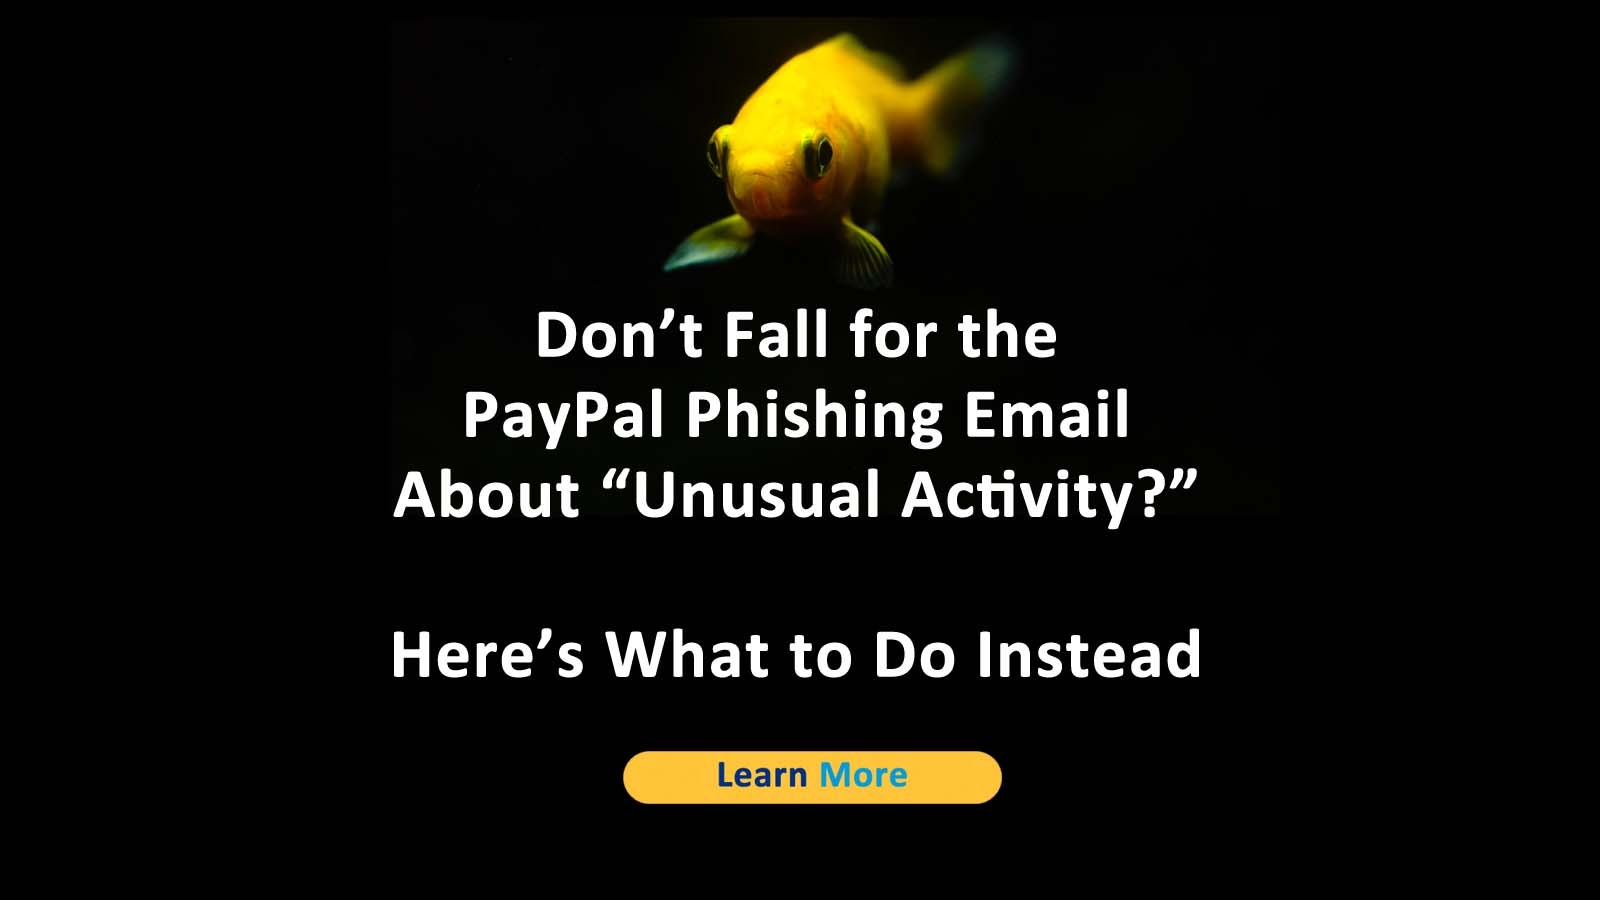 PayPal Phishing Email Unusual Activity